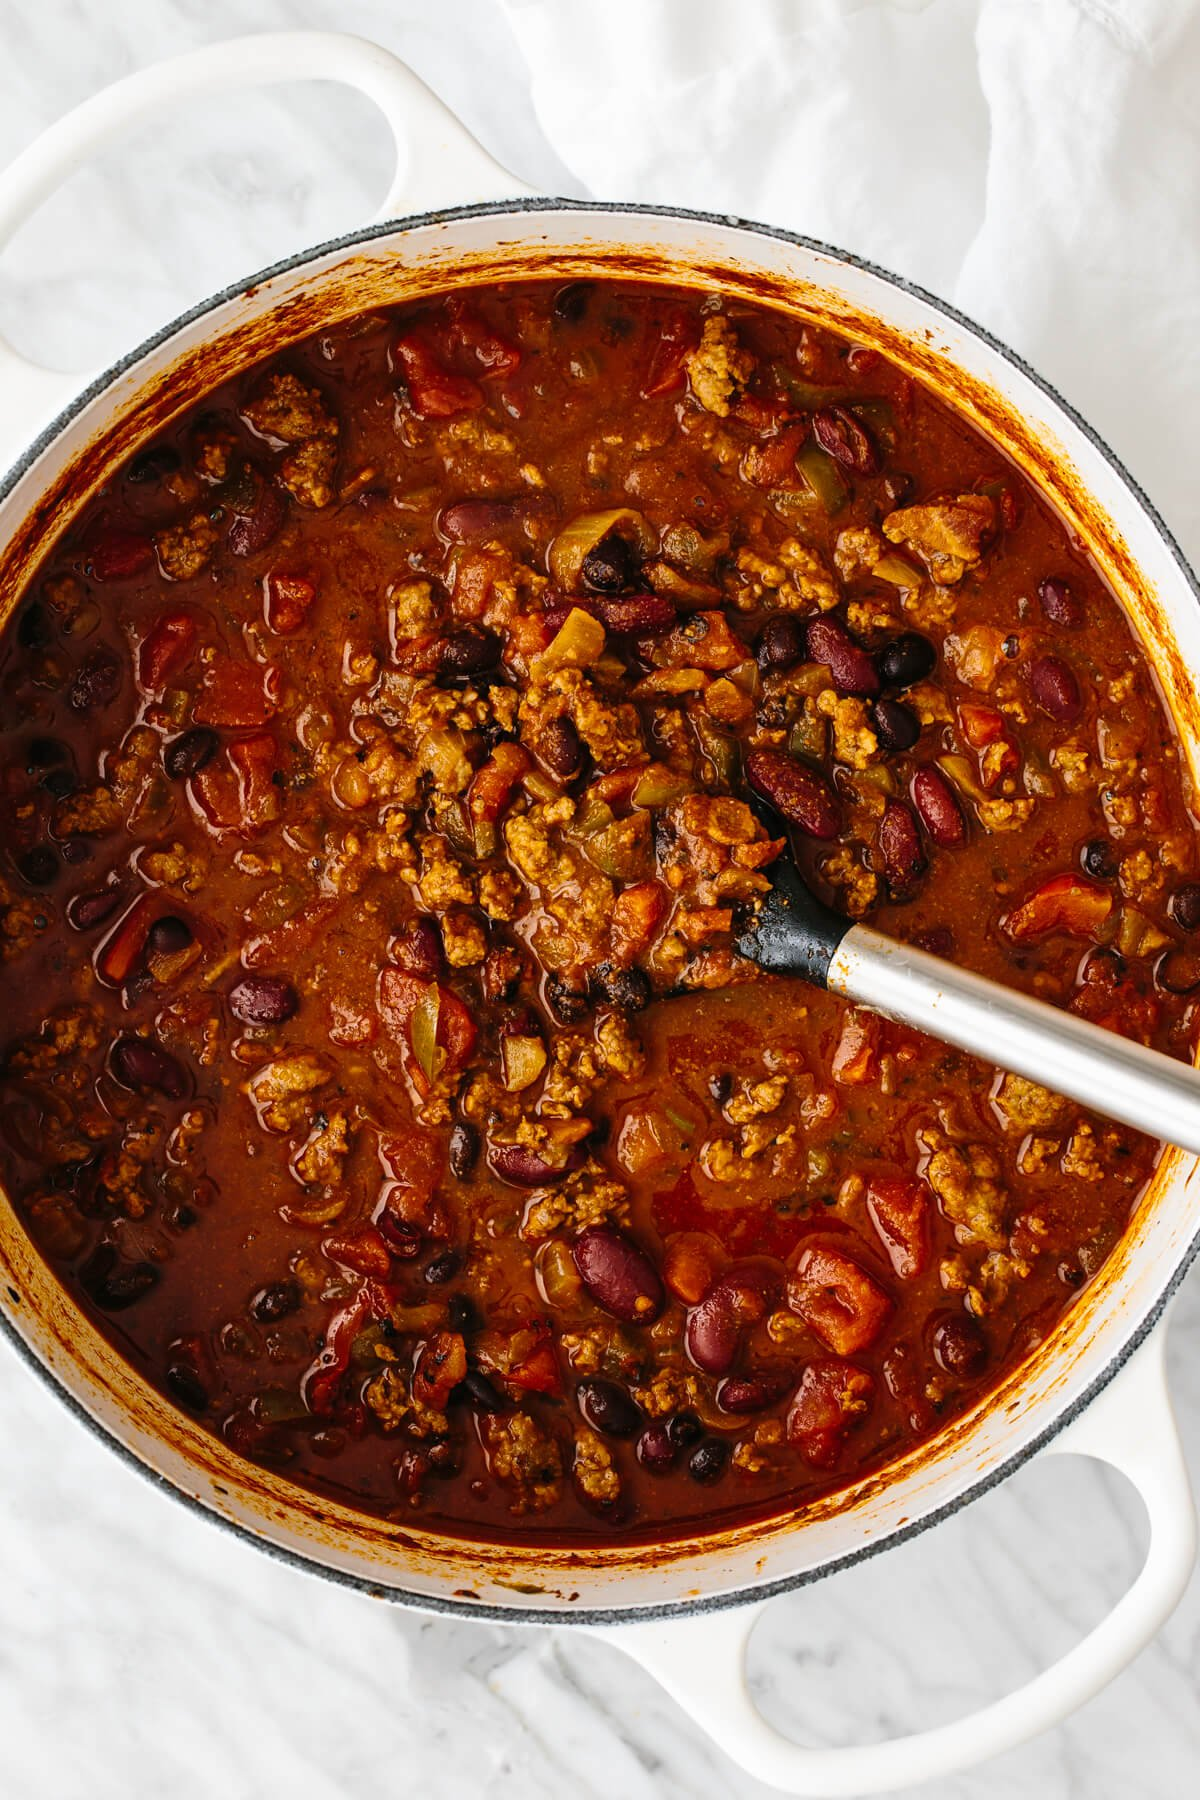 A big pot of chili with a large serving spoon in it.